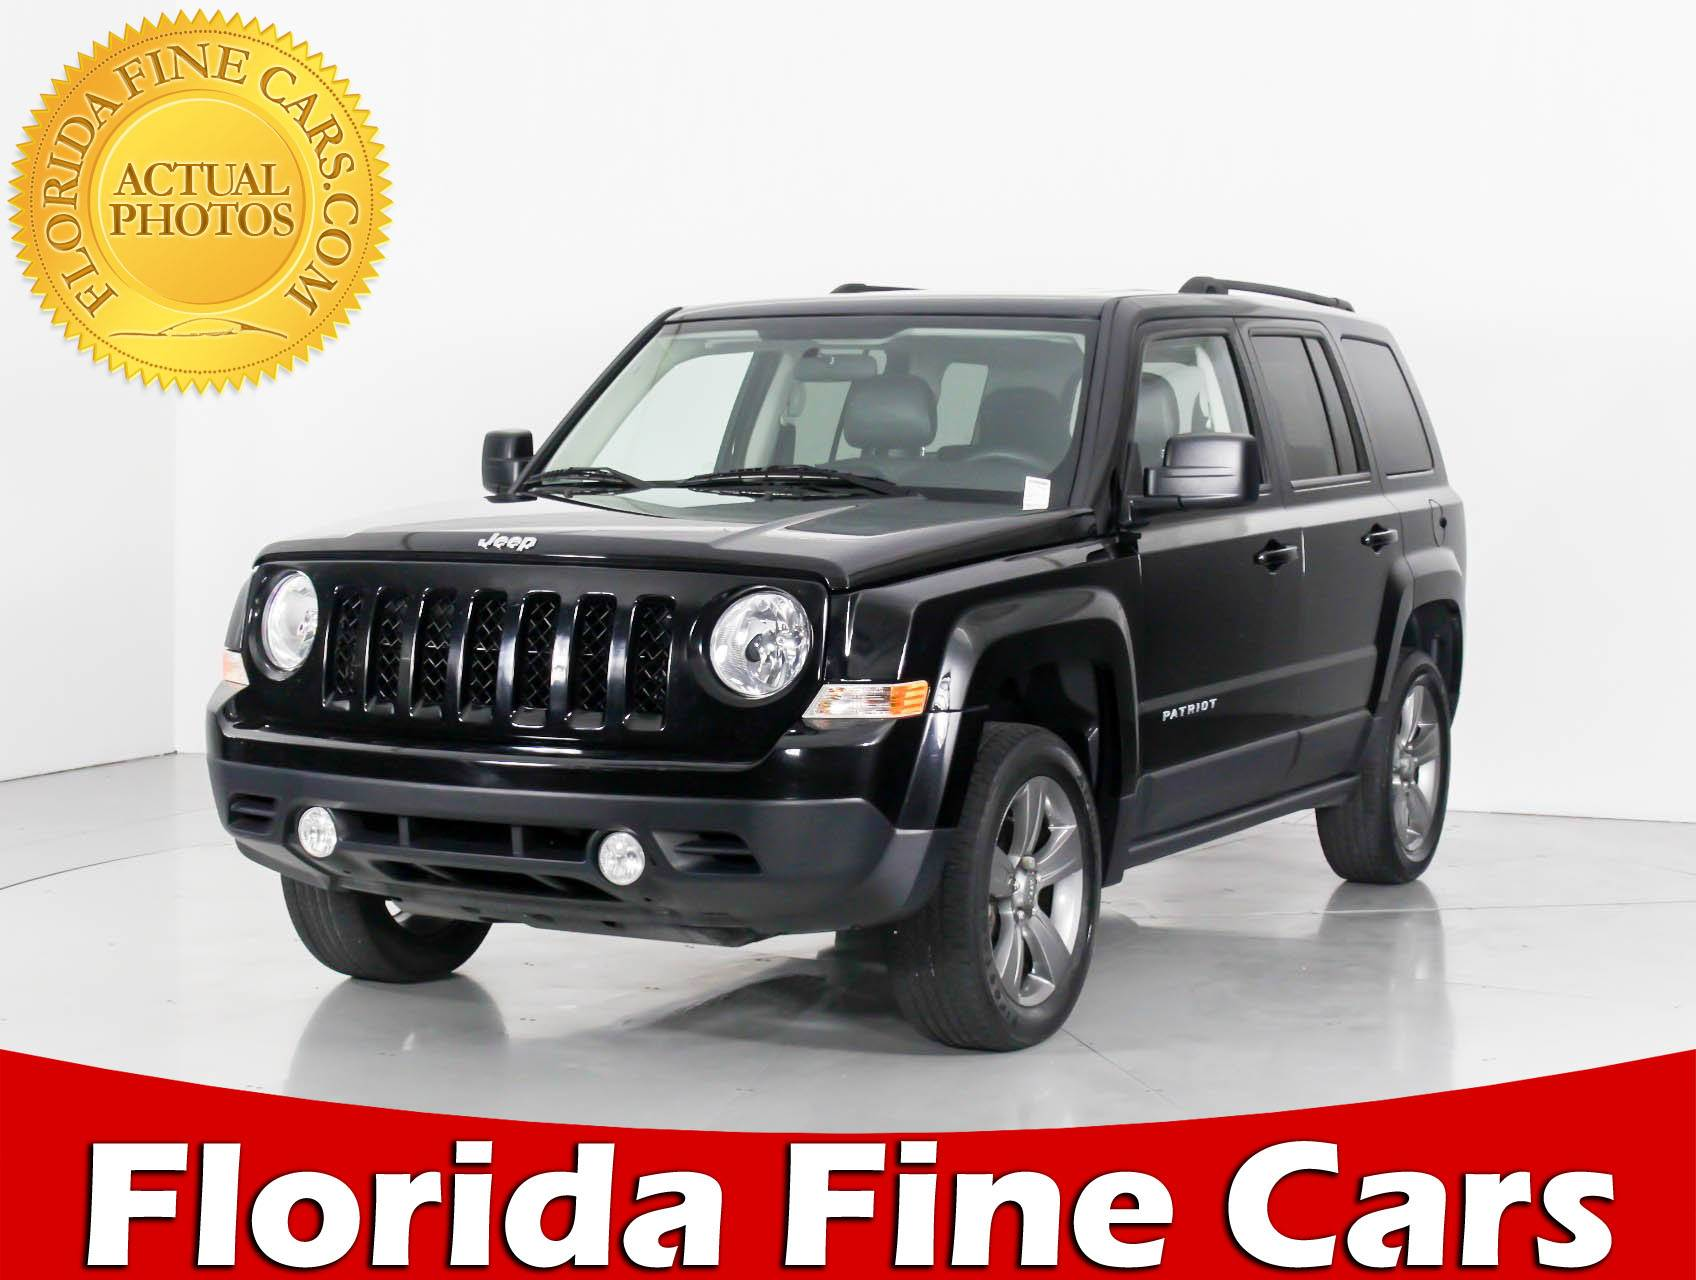 Used 2015 JEEP PATRIOT Latitude 4x4 SUV for sale in HOLLYWOOD, FL